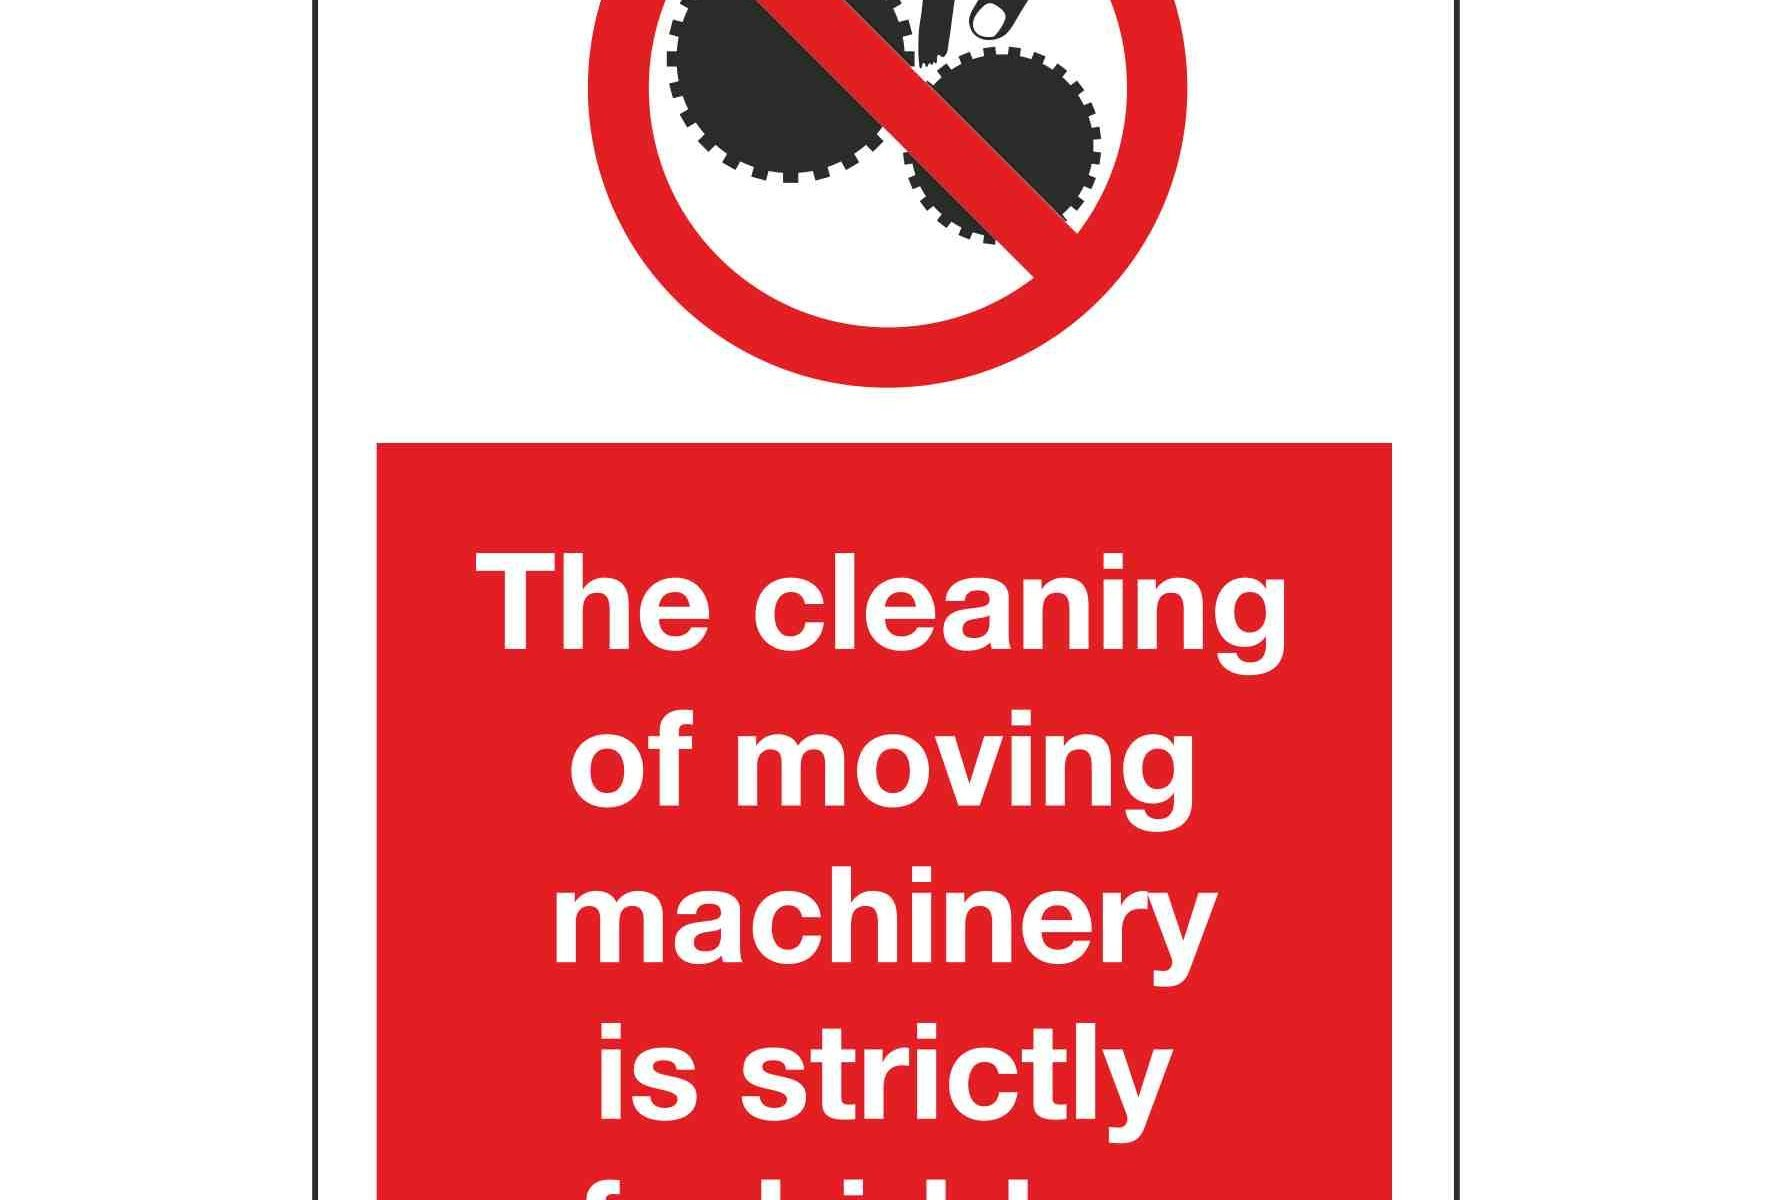 The cleaning of moving machinery is strictly forbidden